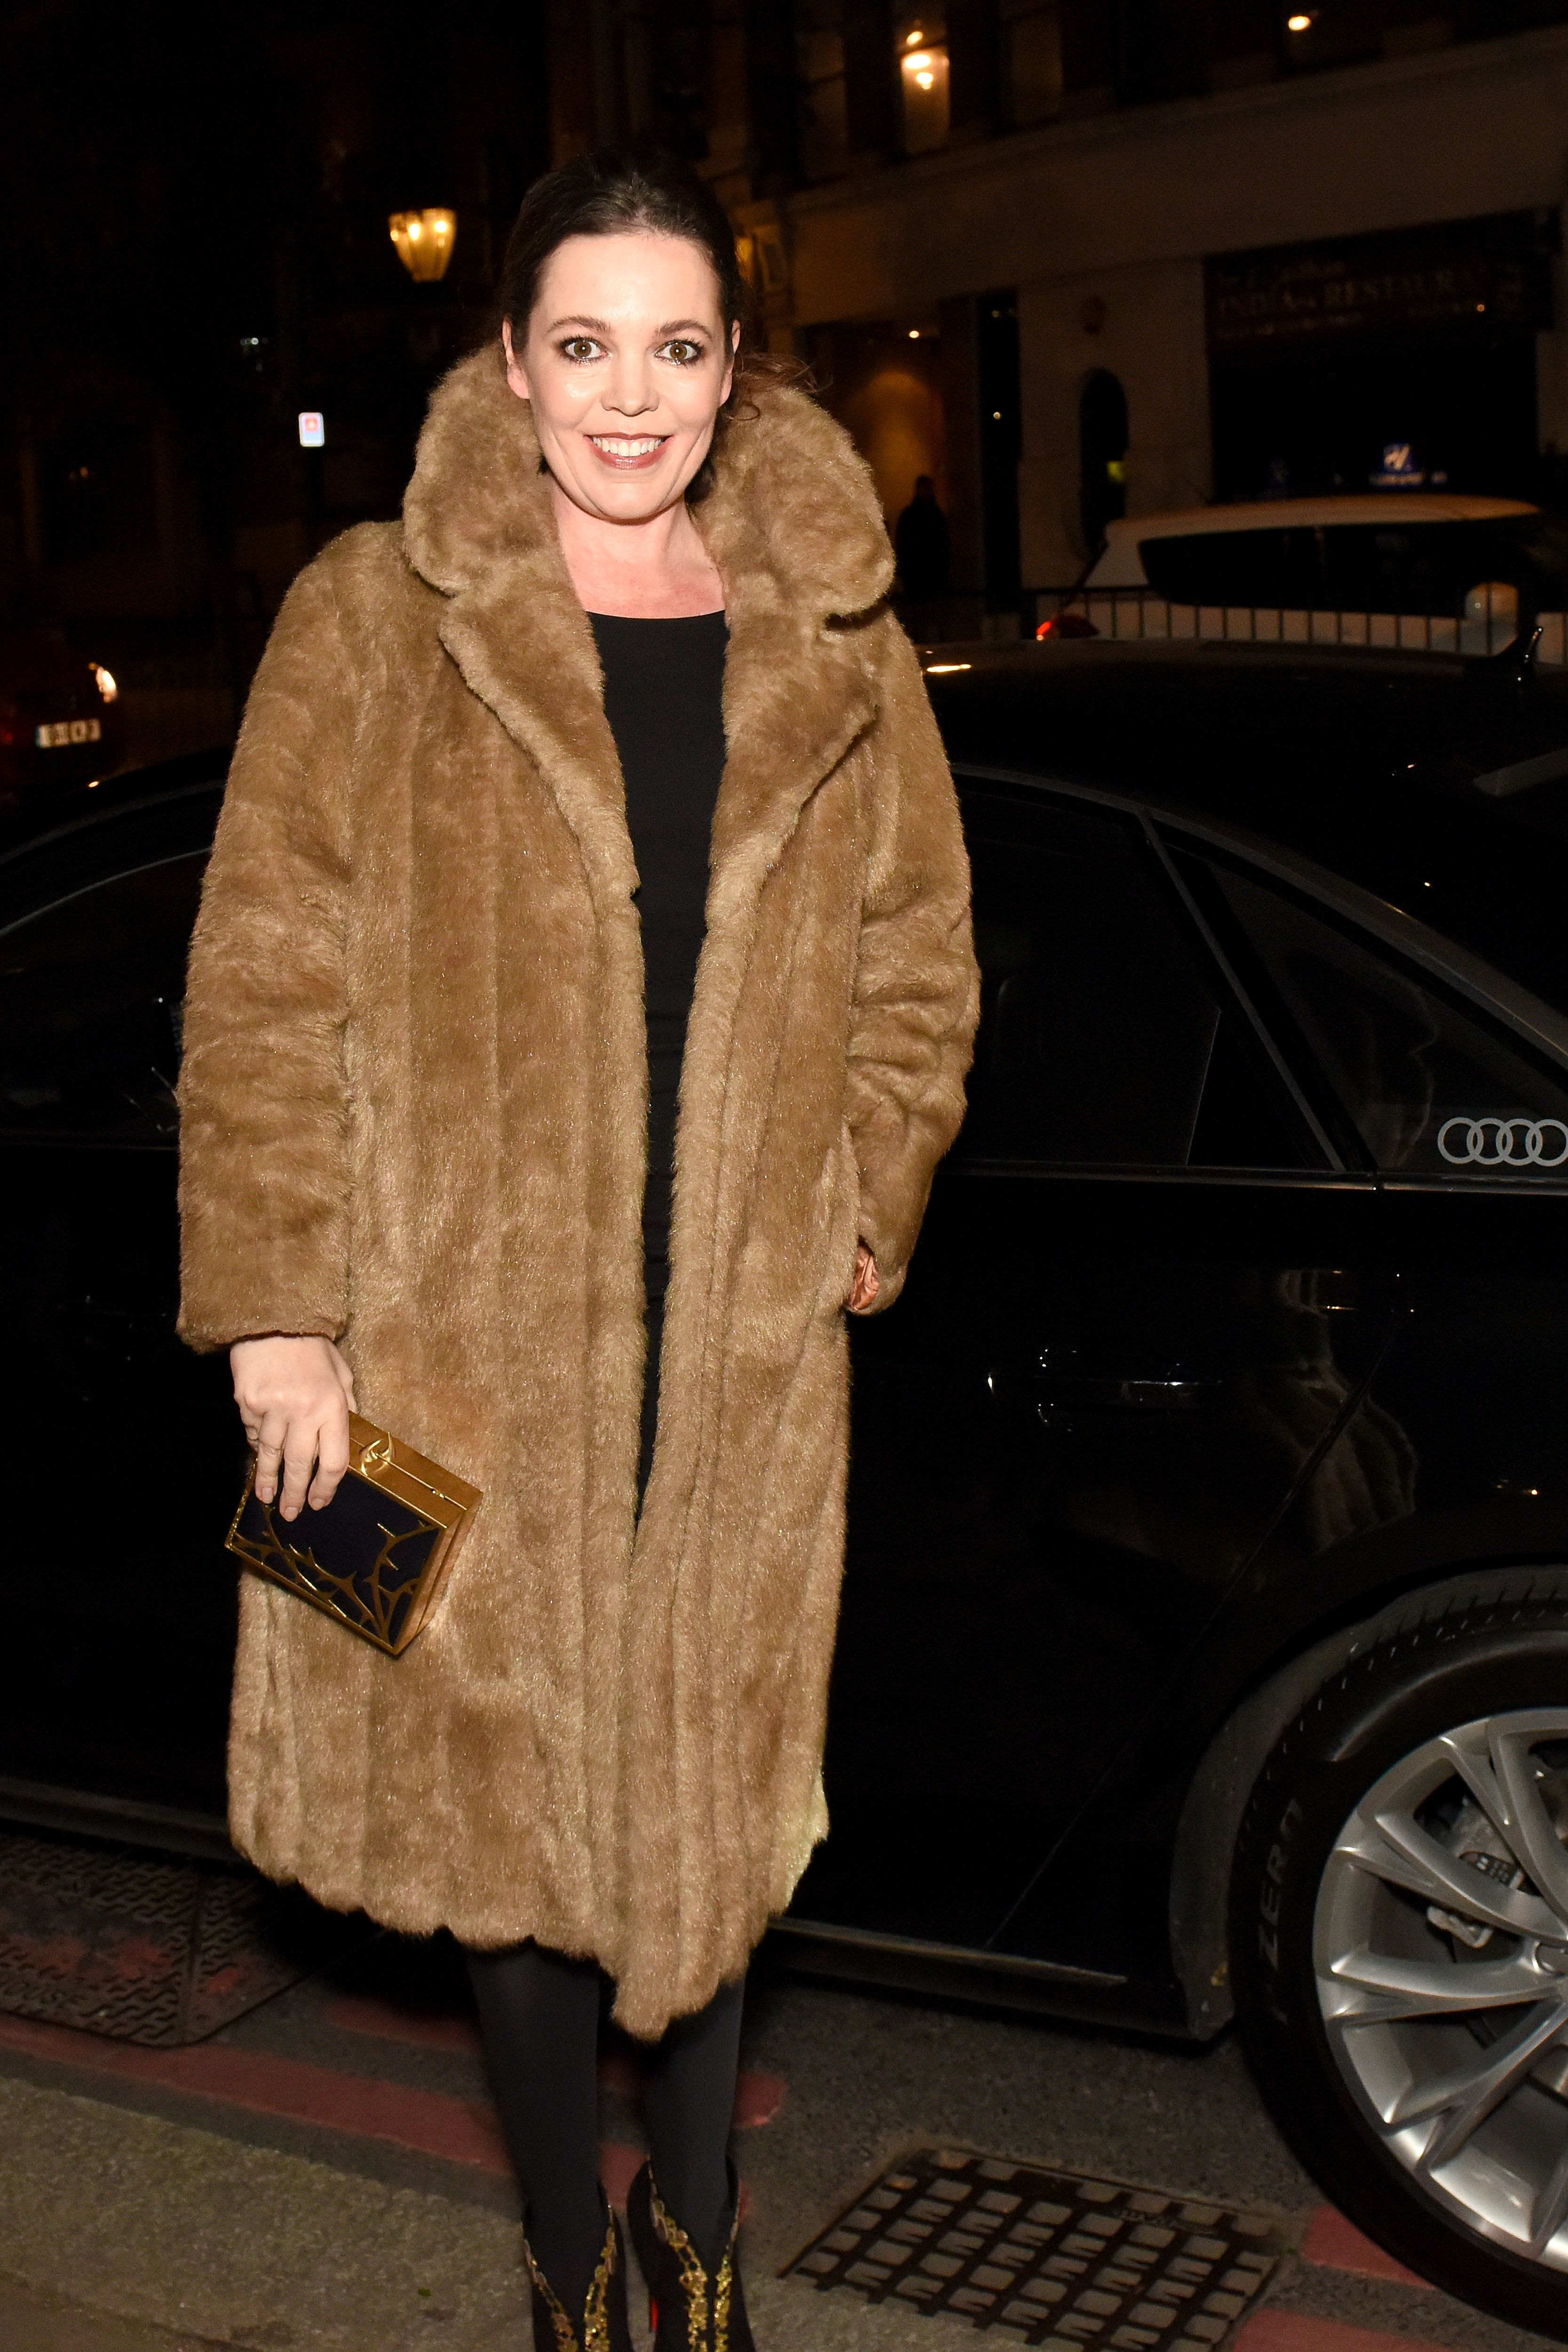 Colman arrived to the British Independent Film Awards wearing a full-length fur coat over her black ensemble.